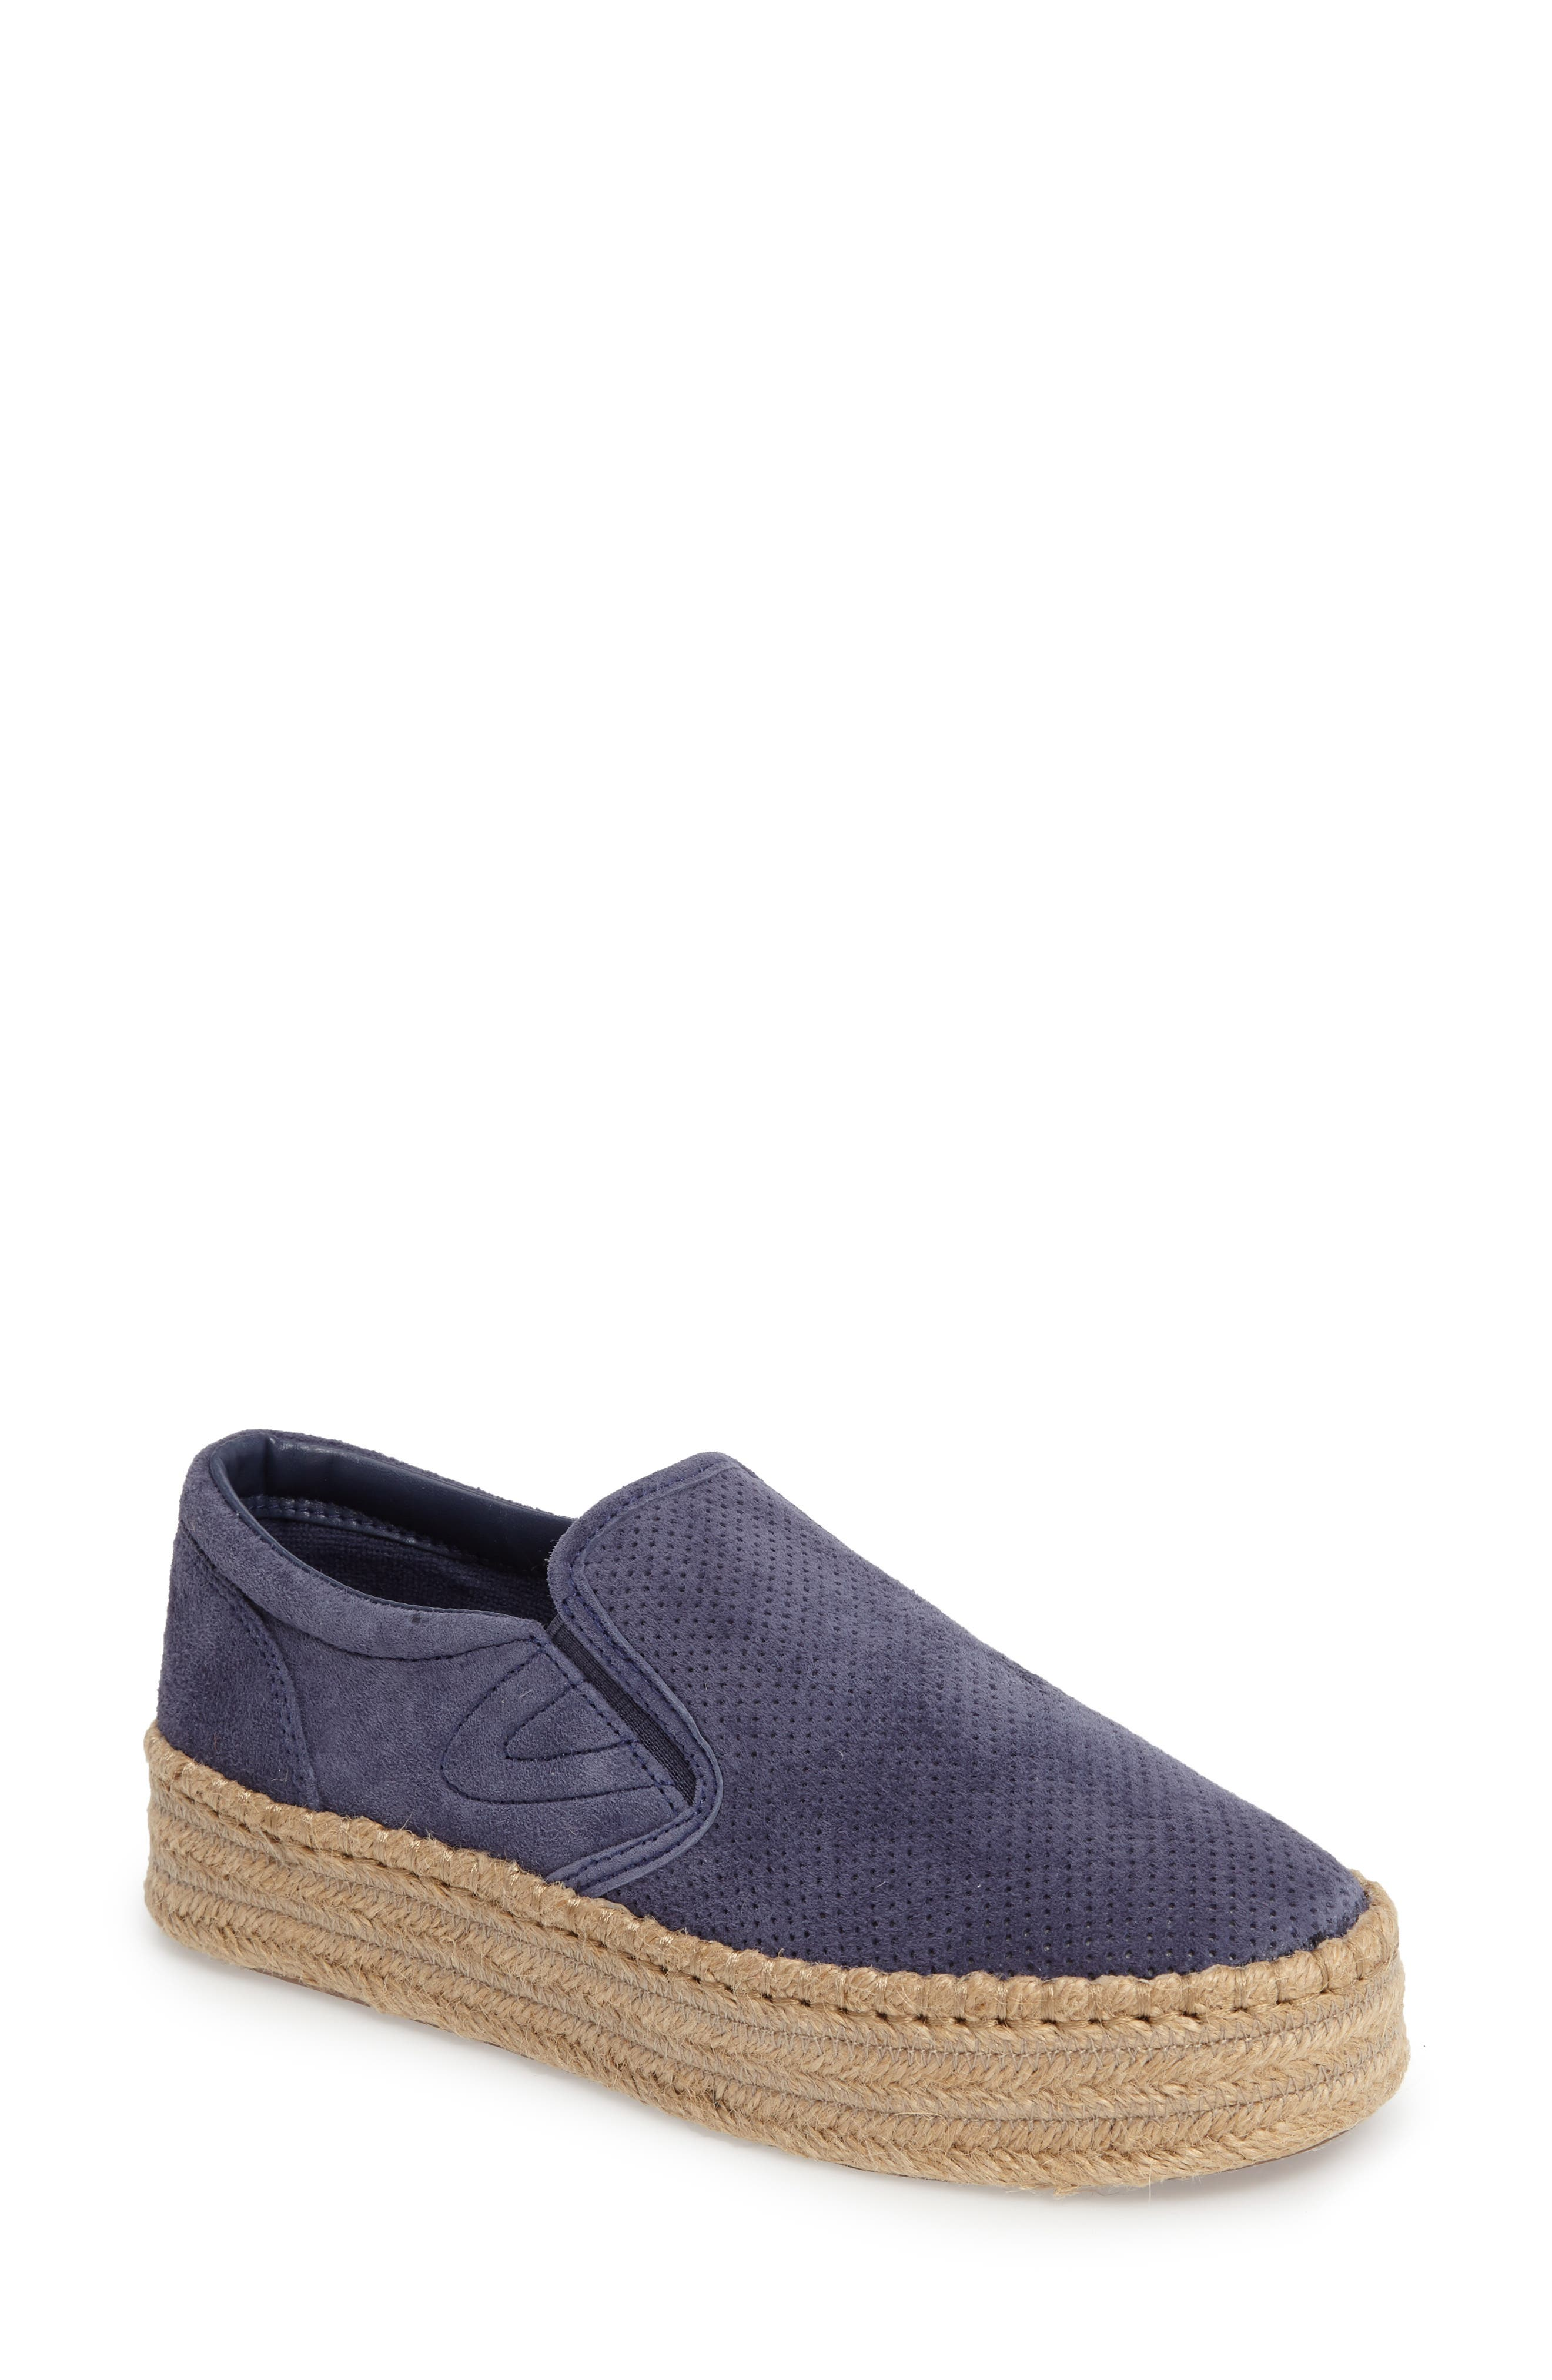 Tretorn Espadrille Slip-On (Women)